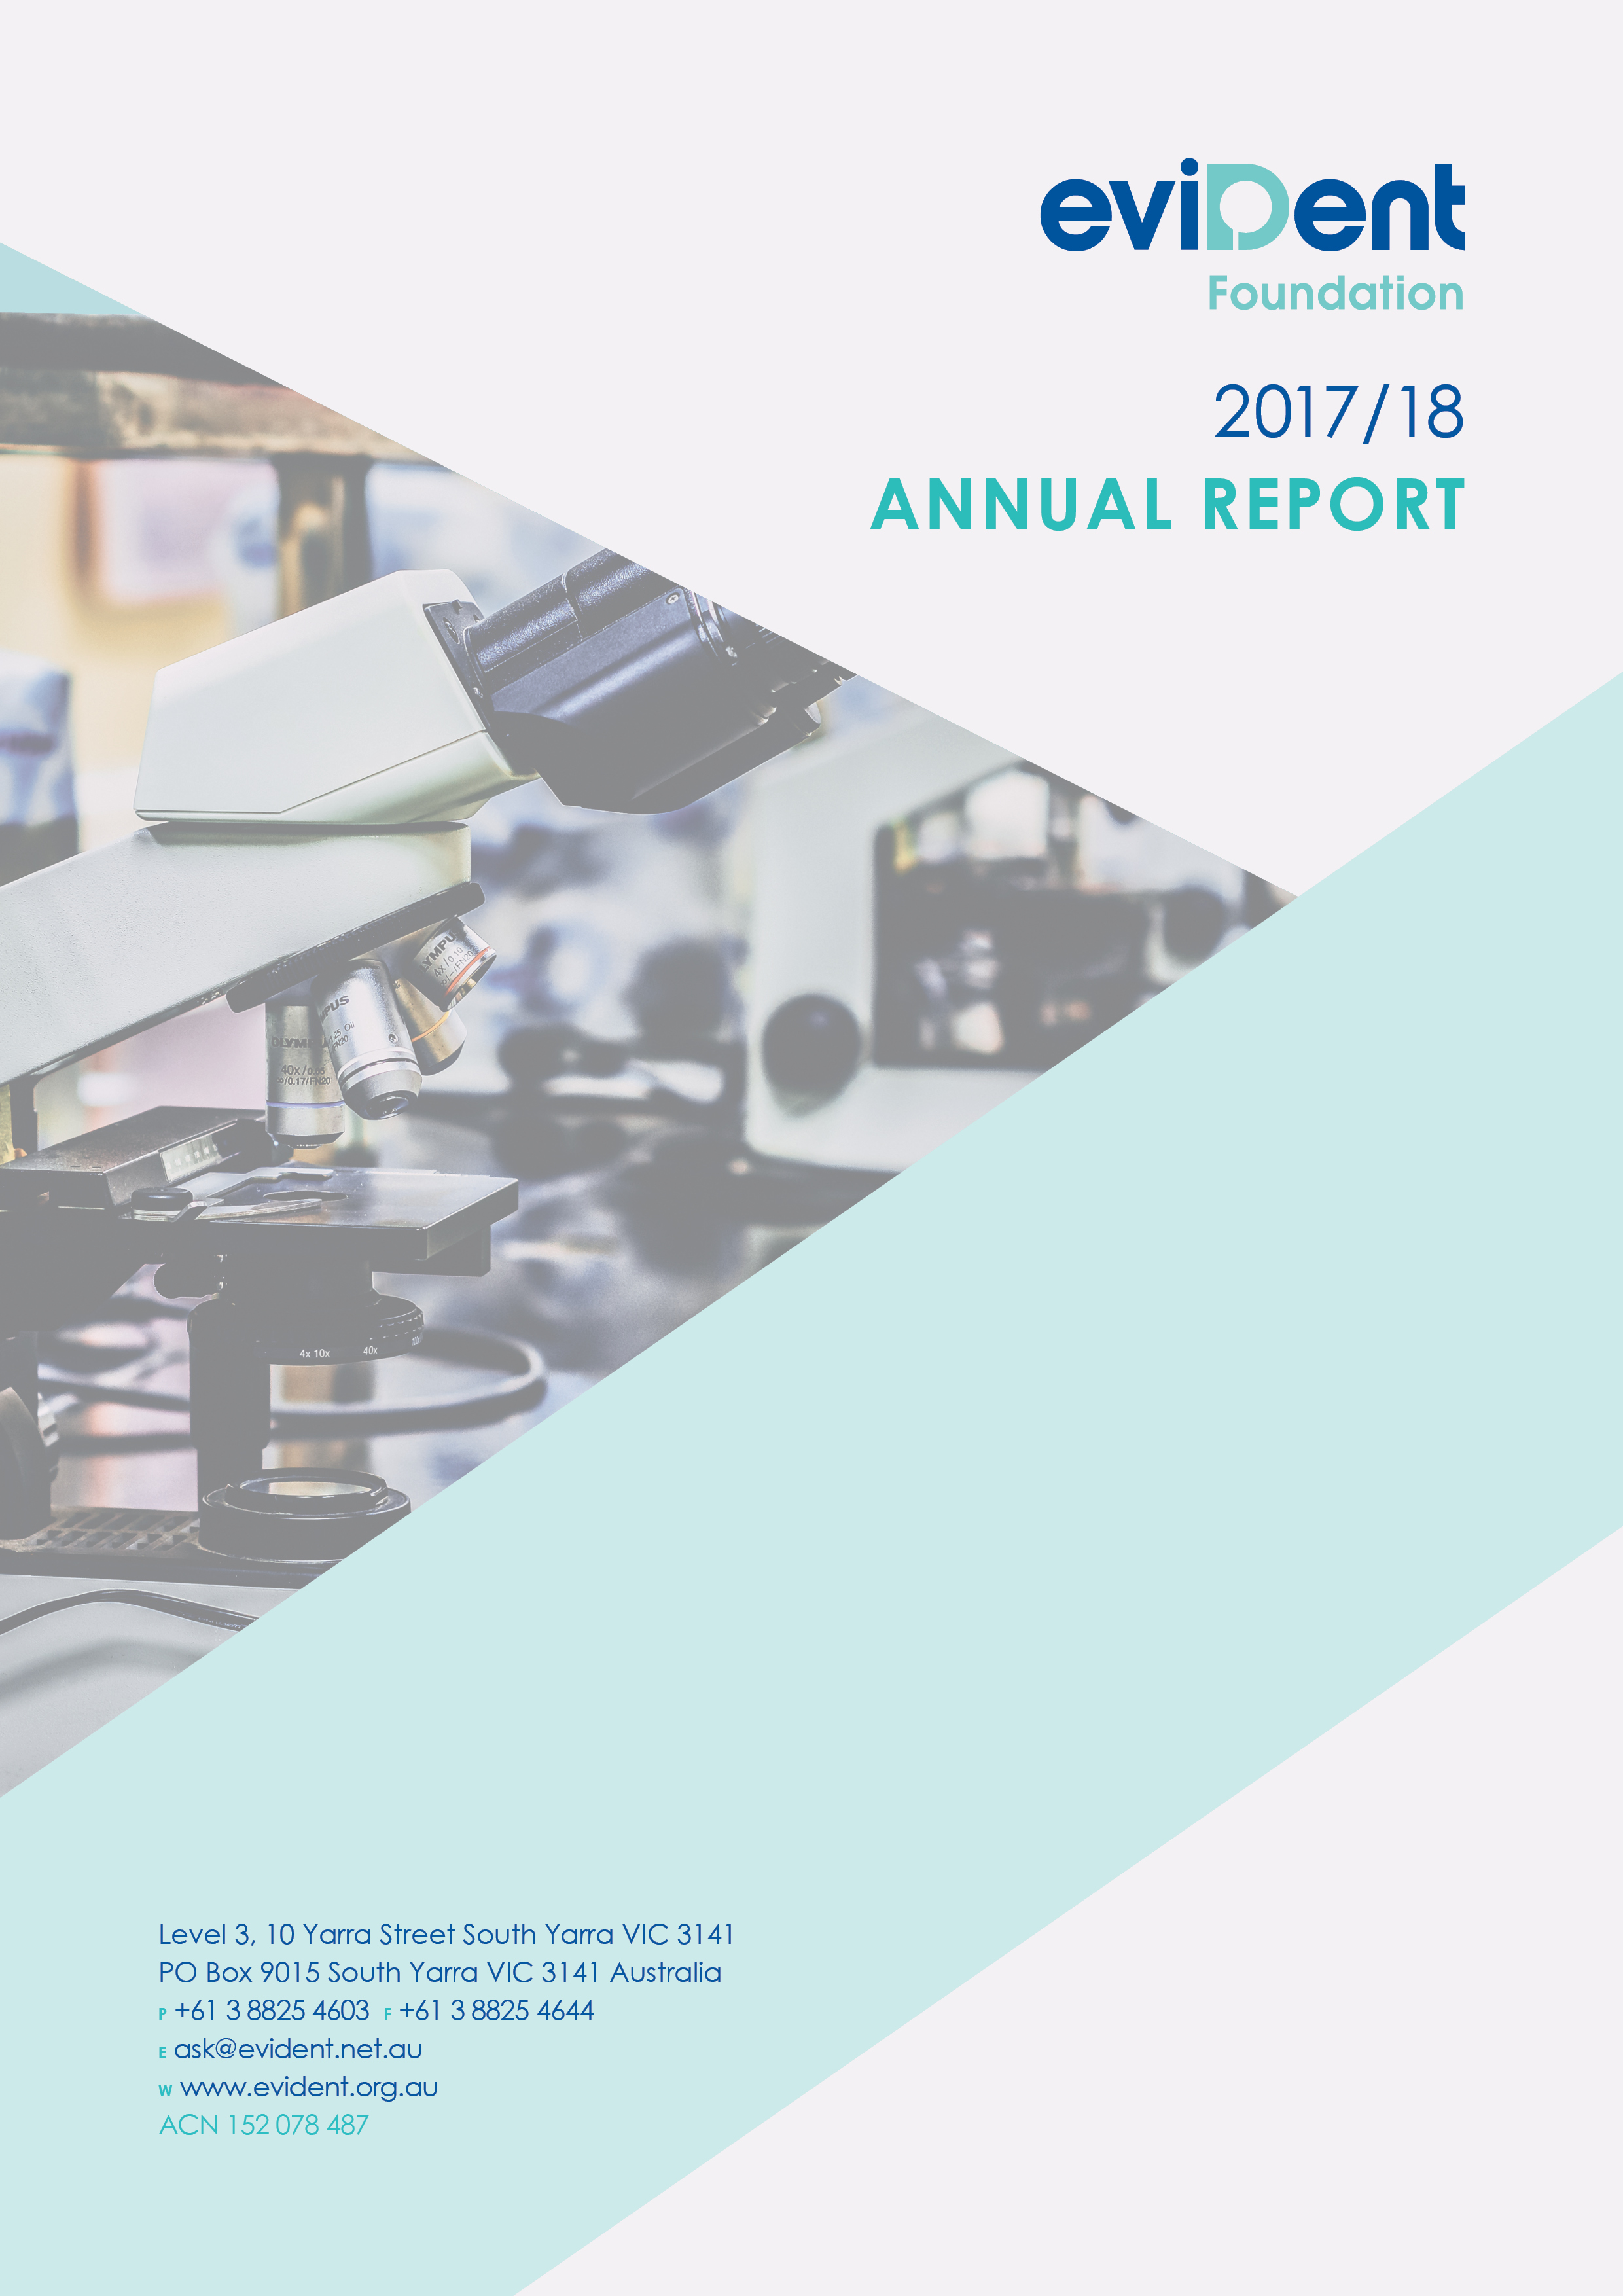 eviDent Annual Report 2017 18 COVER